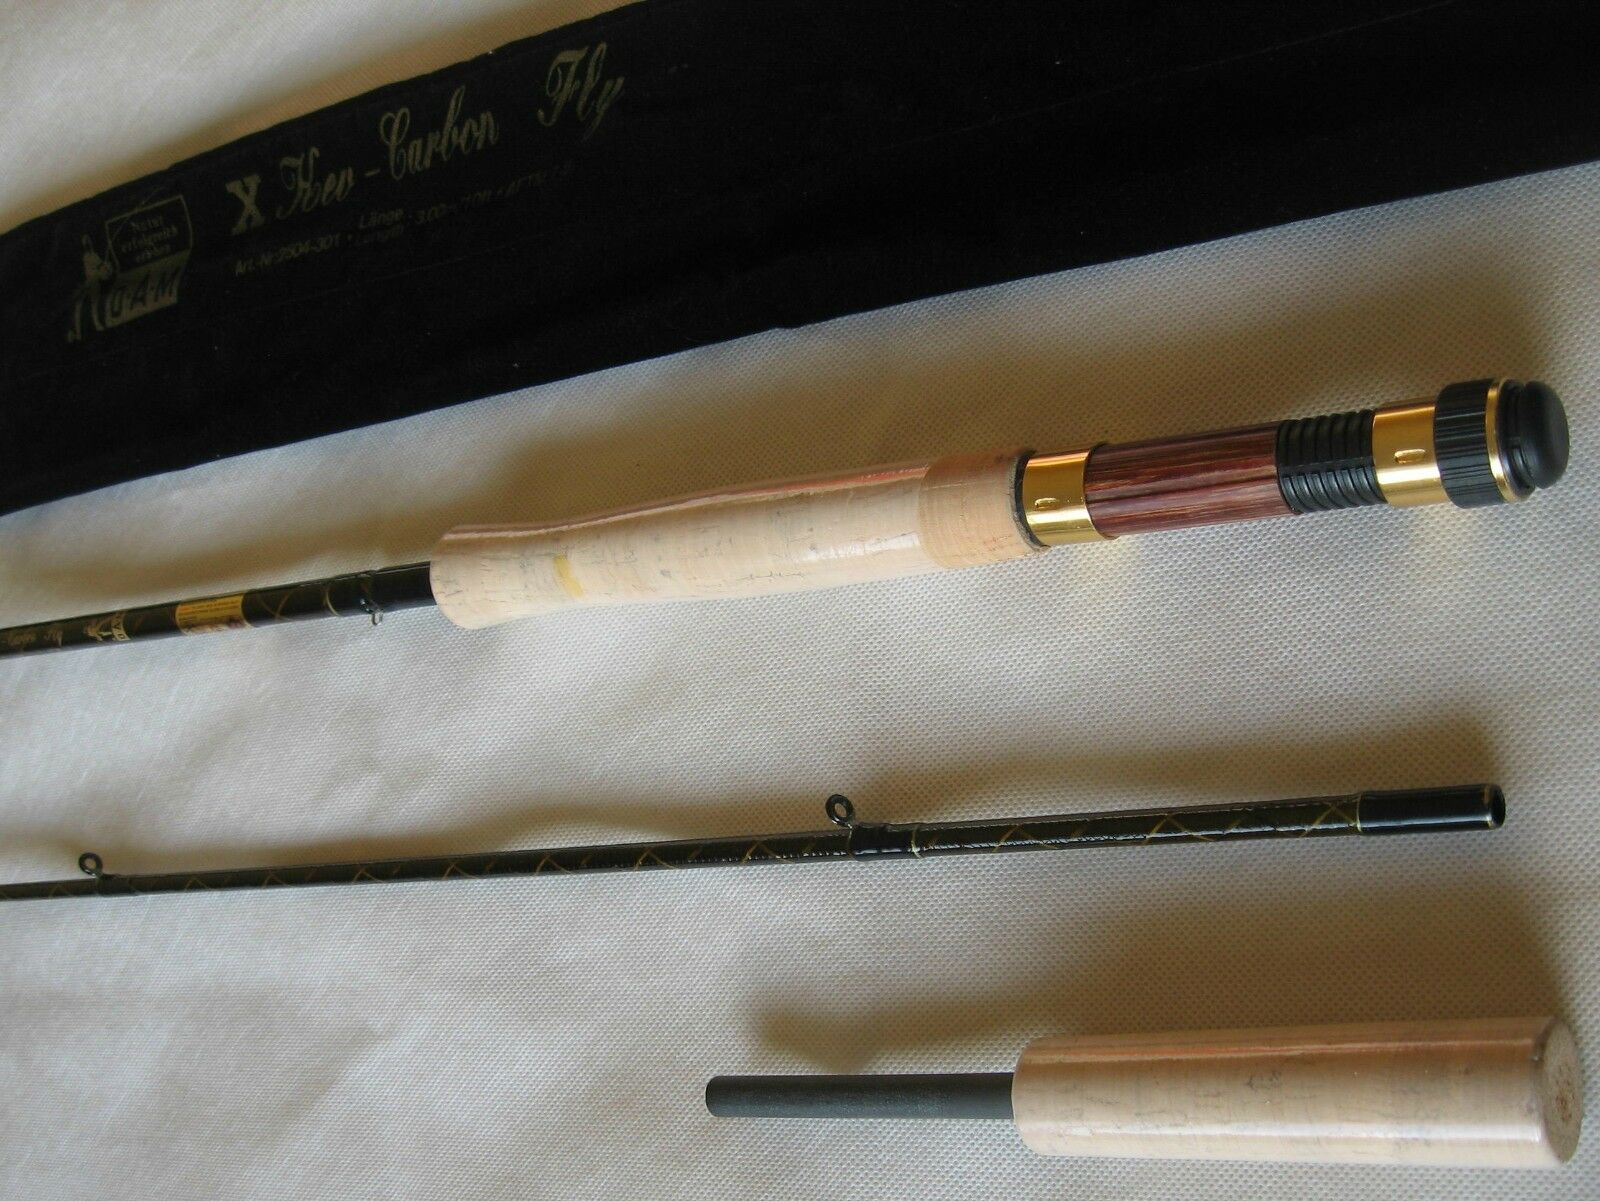 10 ft DAM 7/8 c Carbon Fly Rod 2 Piece For Salmon and Trout Fishing